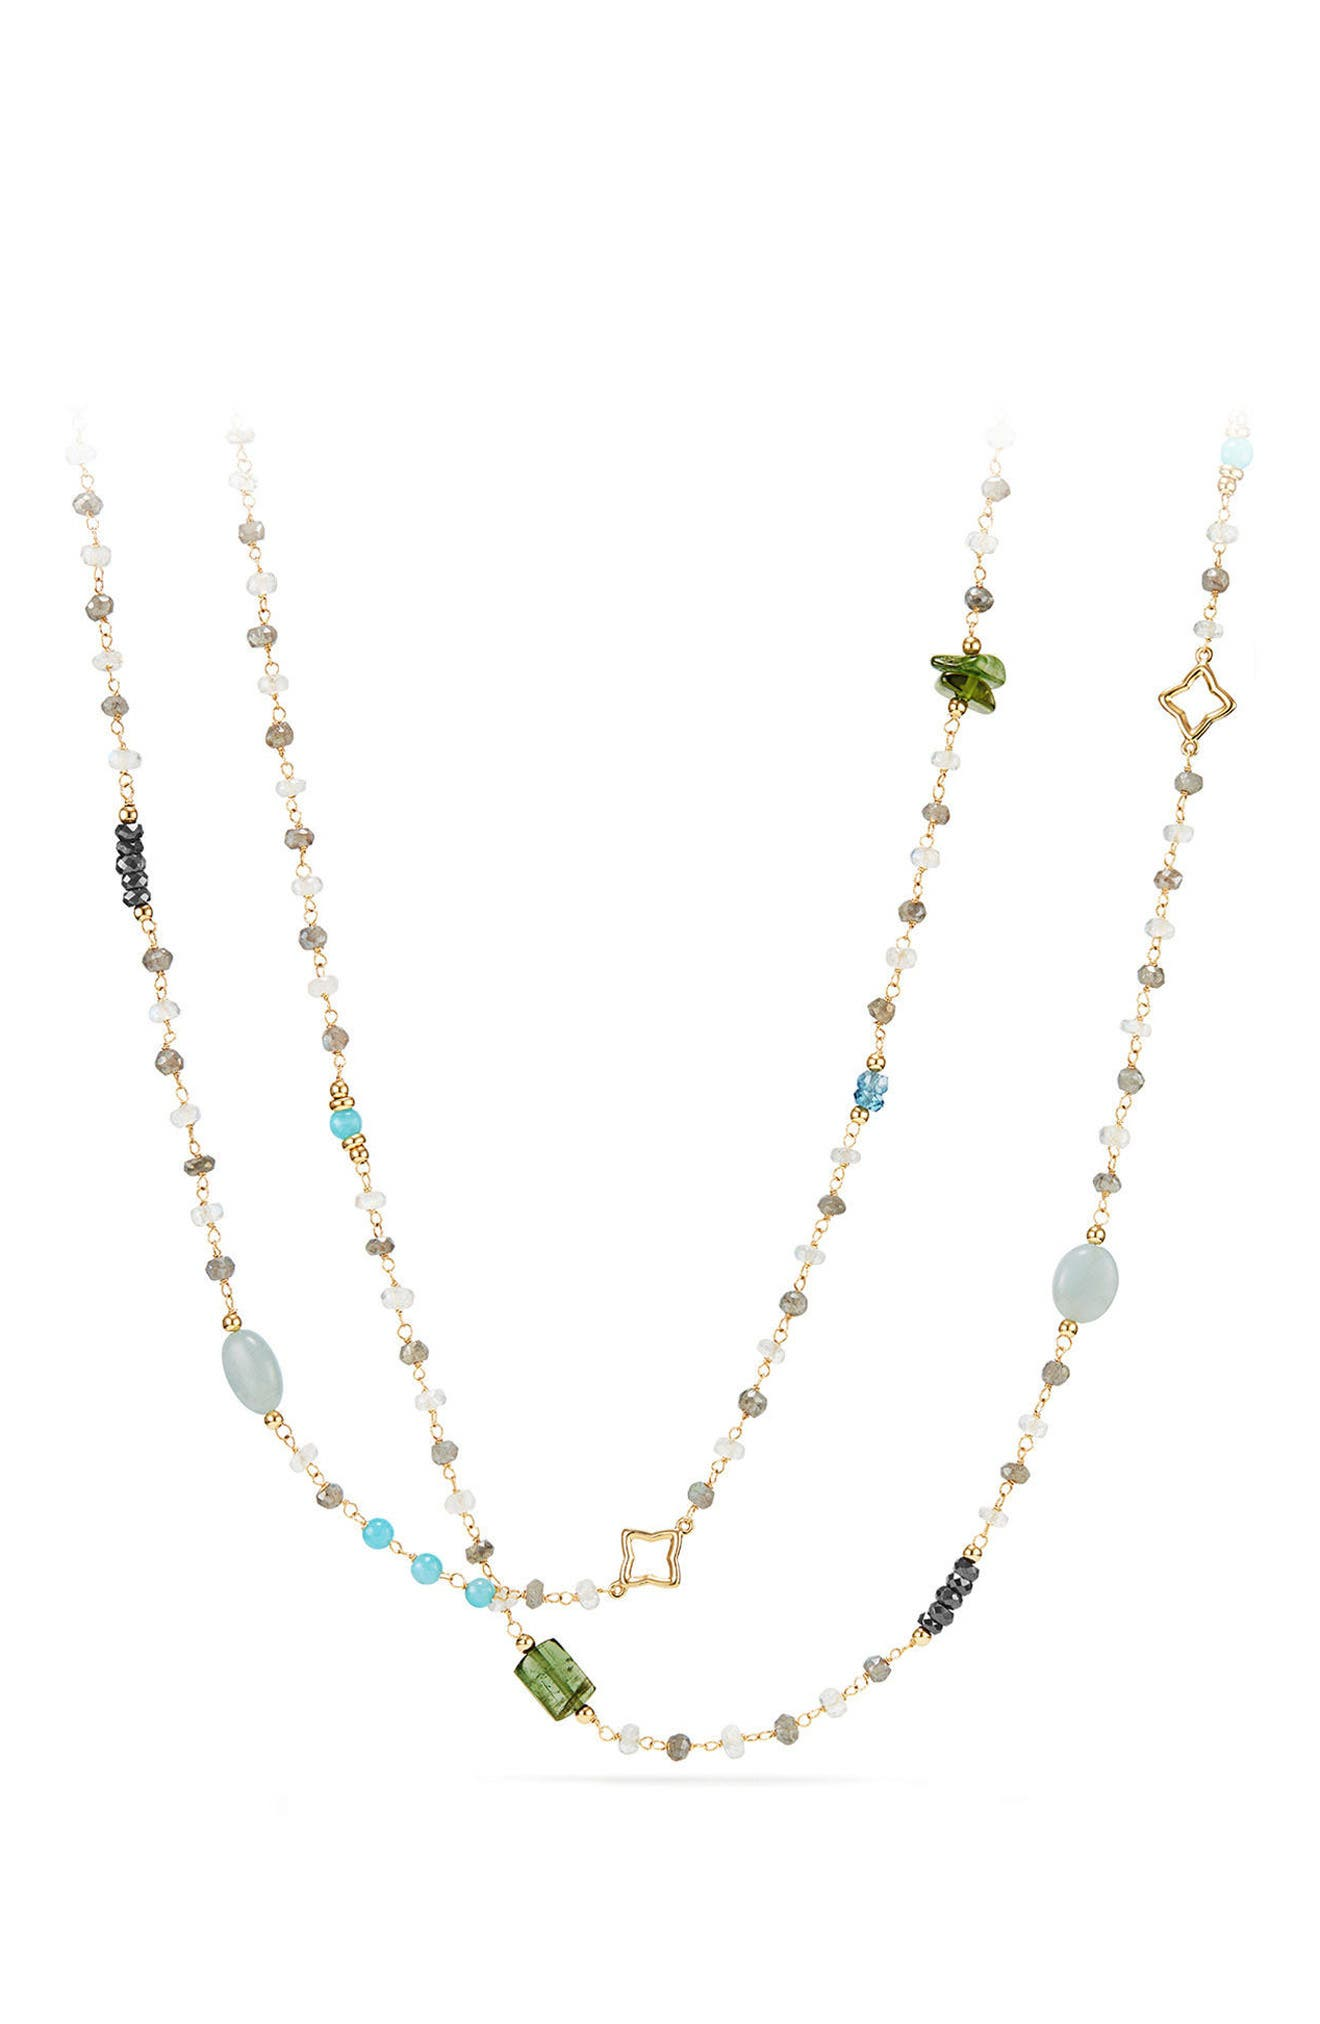 Long Bead & Chain Necklace with Semiprecious Stones in 18K Gold,                             Main thumbnail 1, color,                             MALACHITE